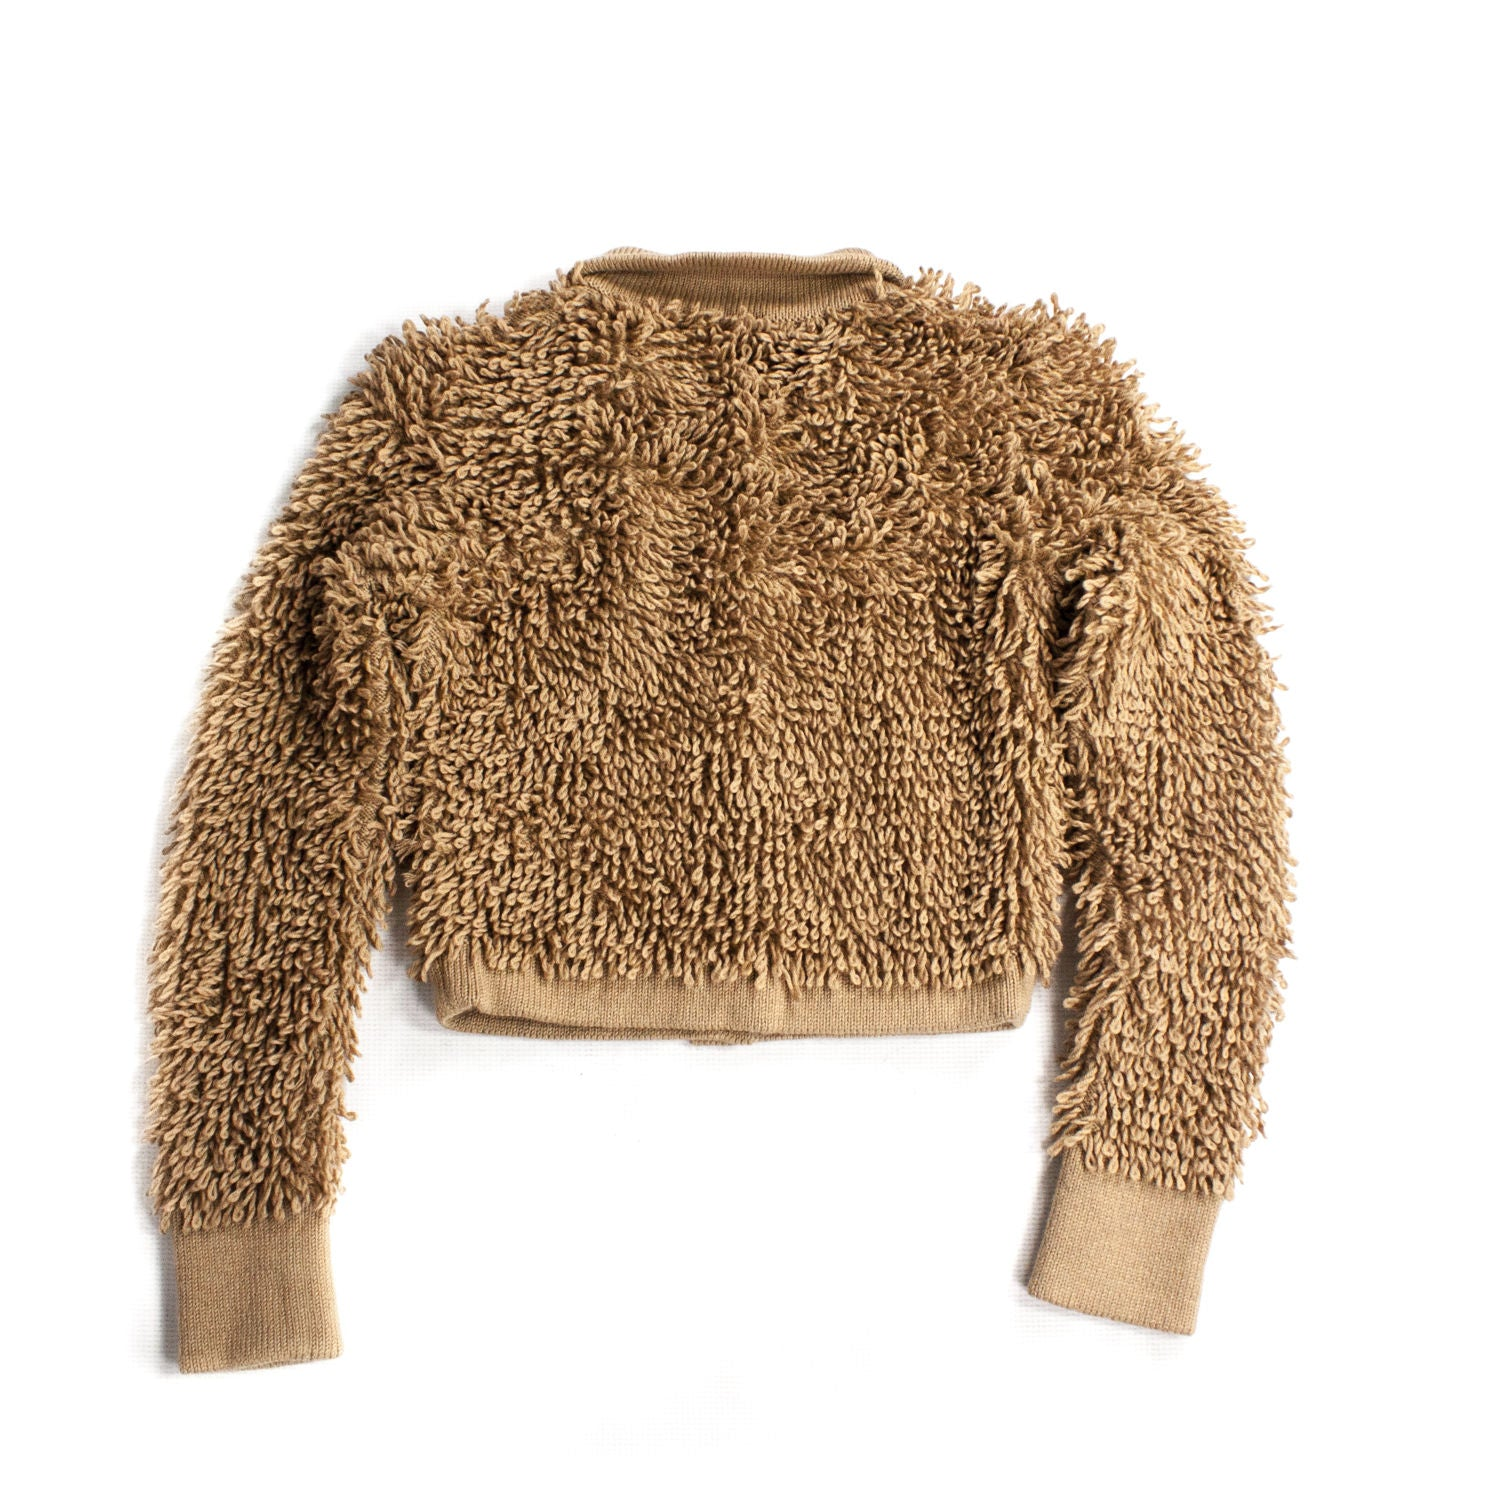 VALENTINO 100% Wool Teddy Bear Style Cropped Fluffy Cardigan, SIZE S - secondfirst